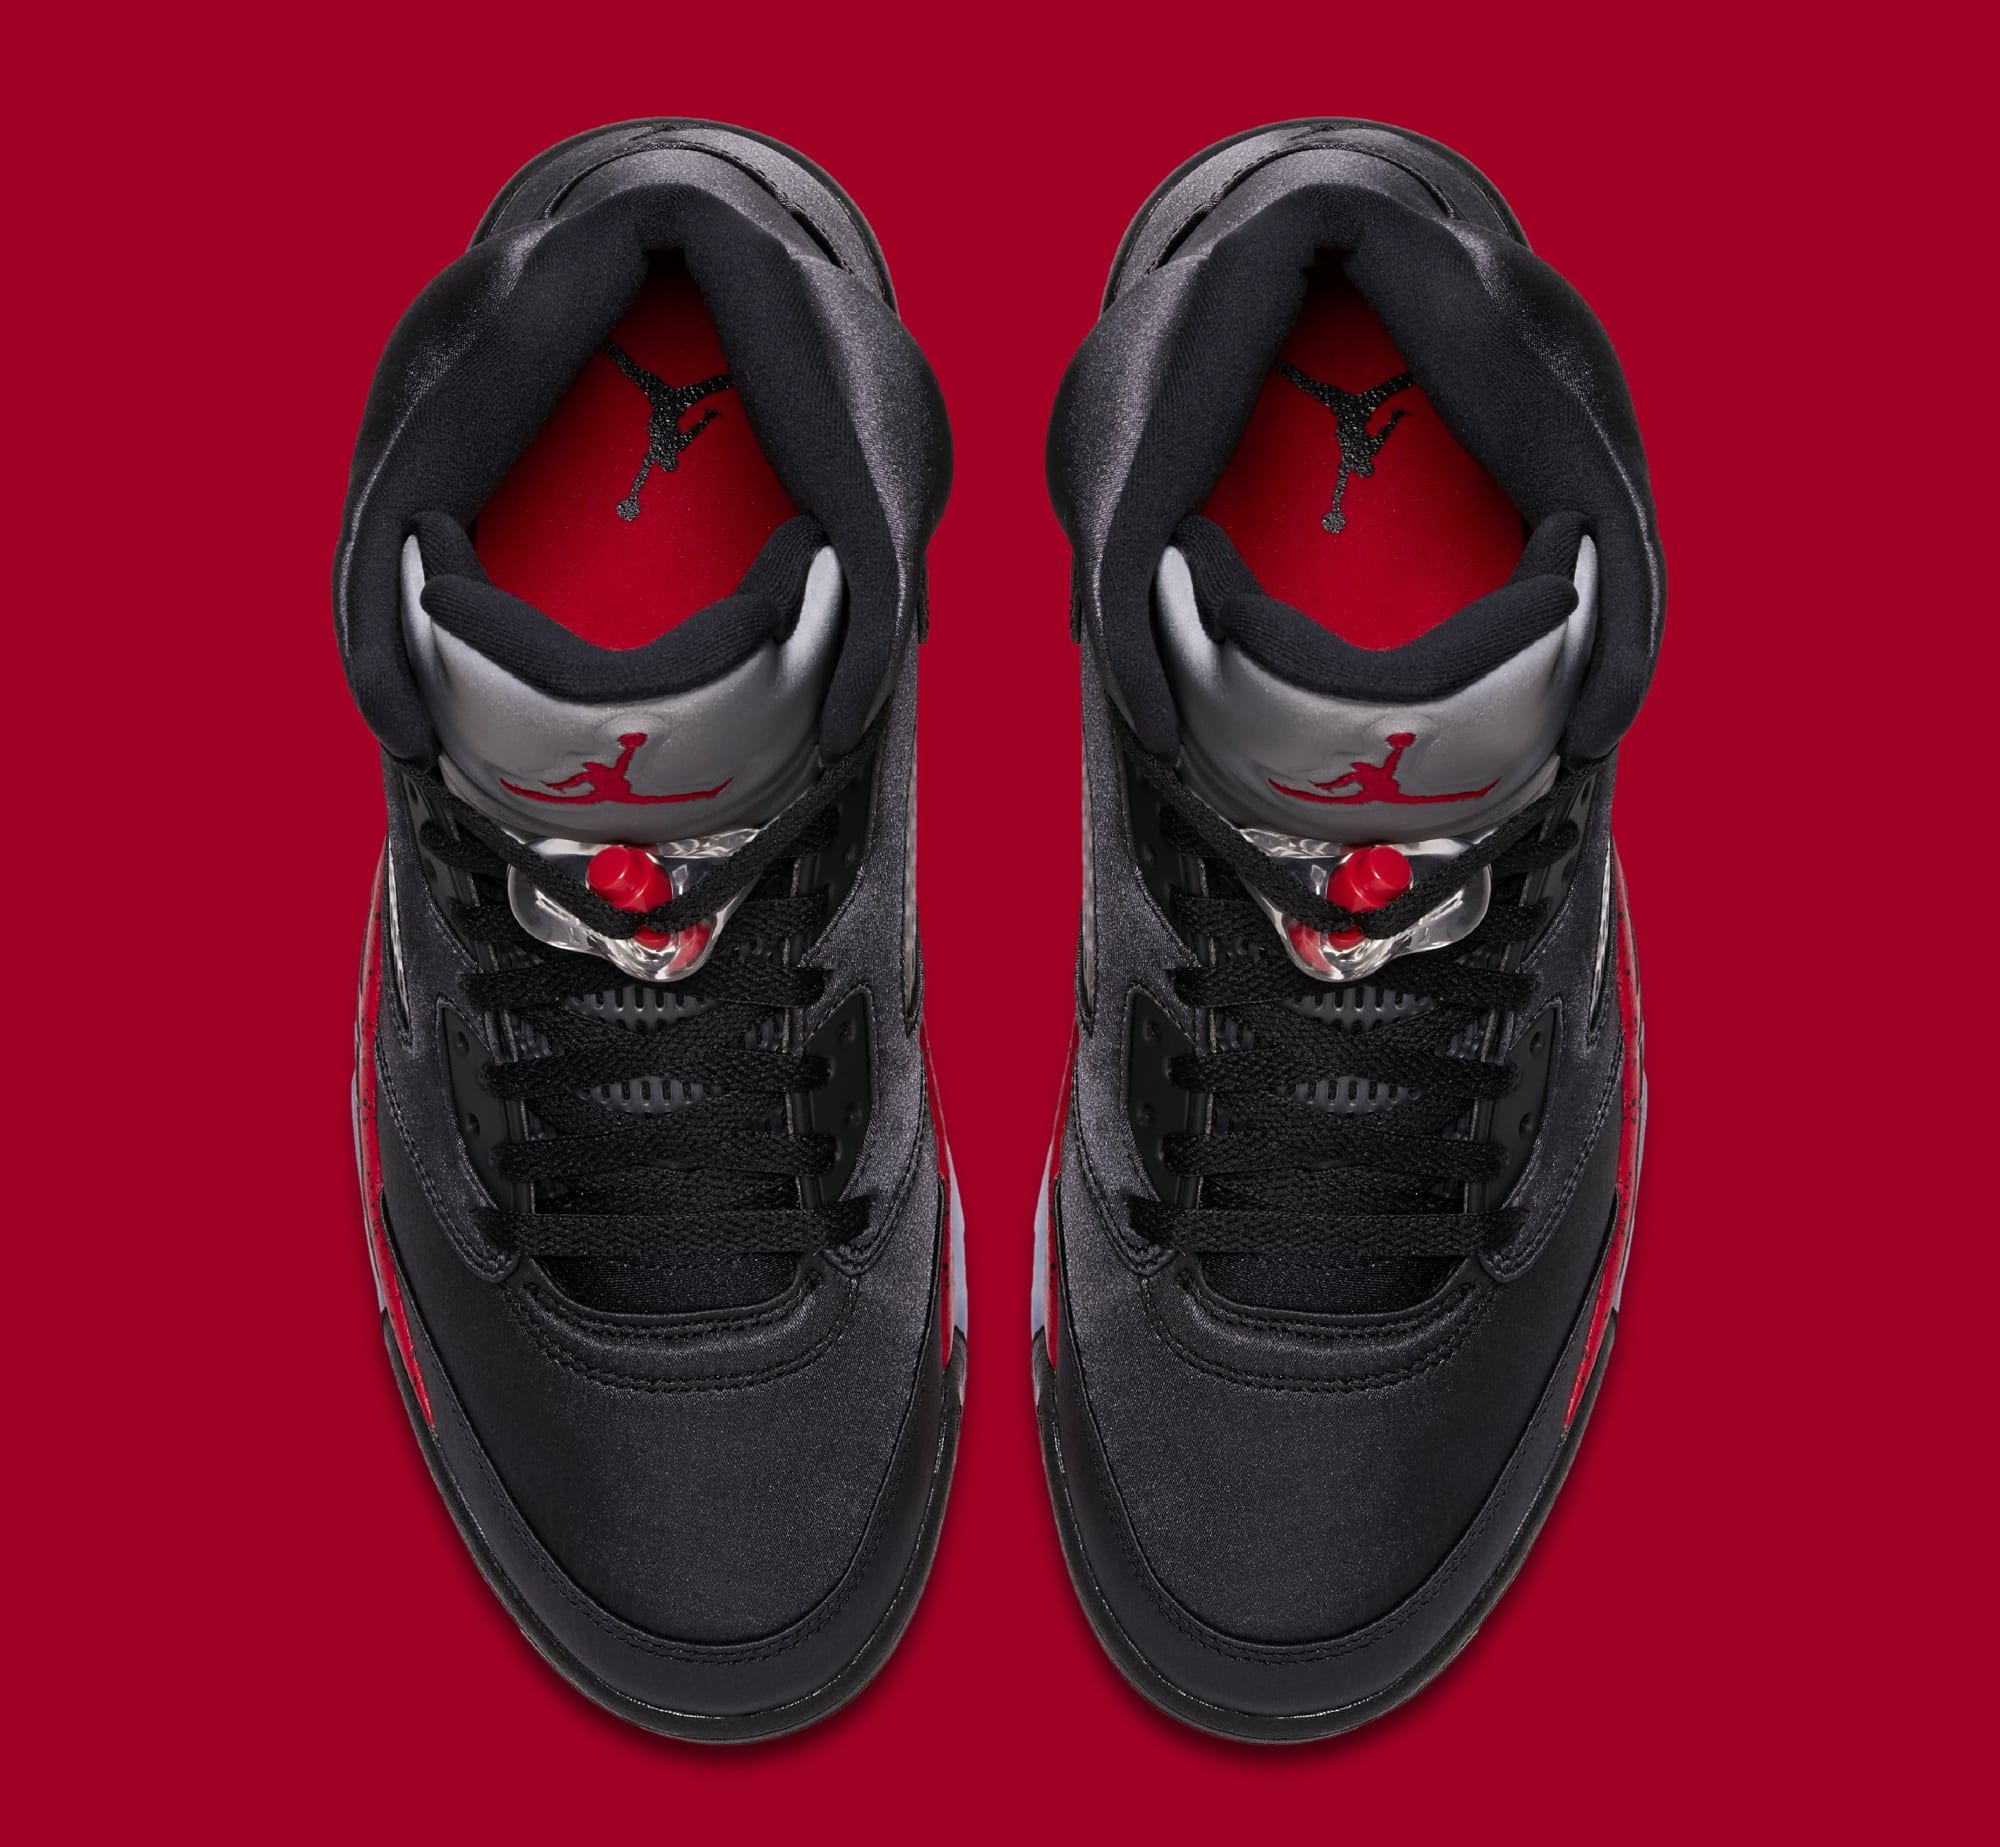 cheap for discount 106ba b8472 ... canada image via nike air jordan 5 retro black university red 136027 006  top 47543 4bdb2